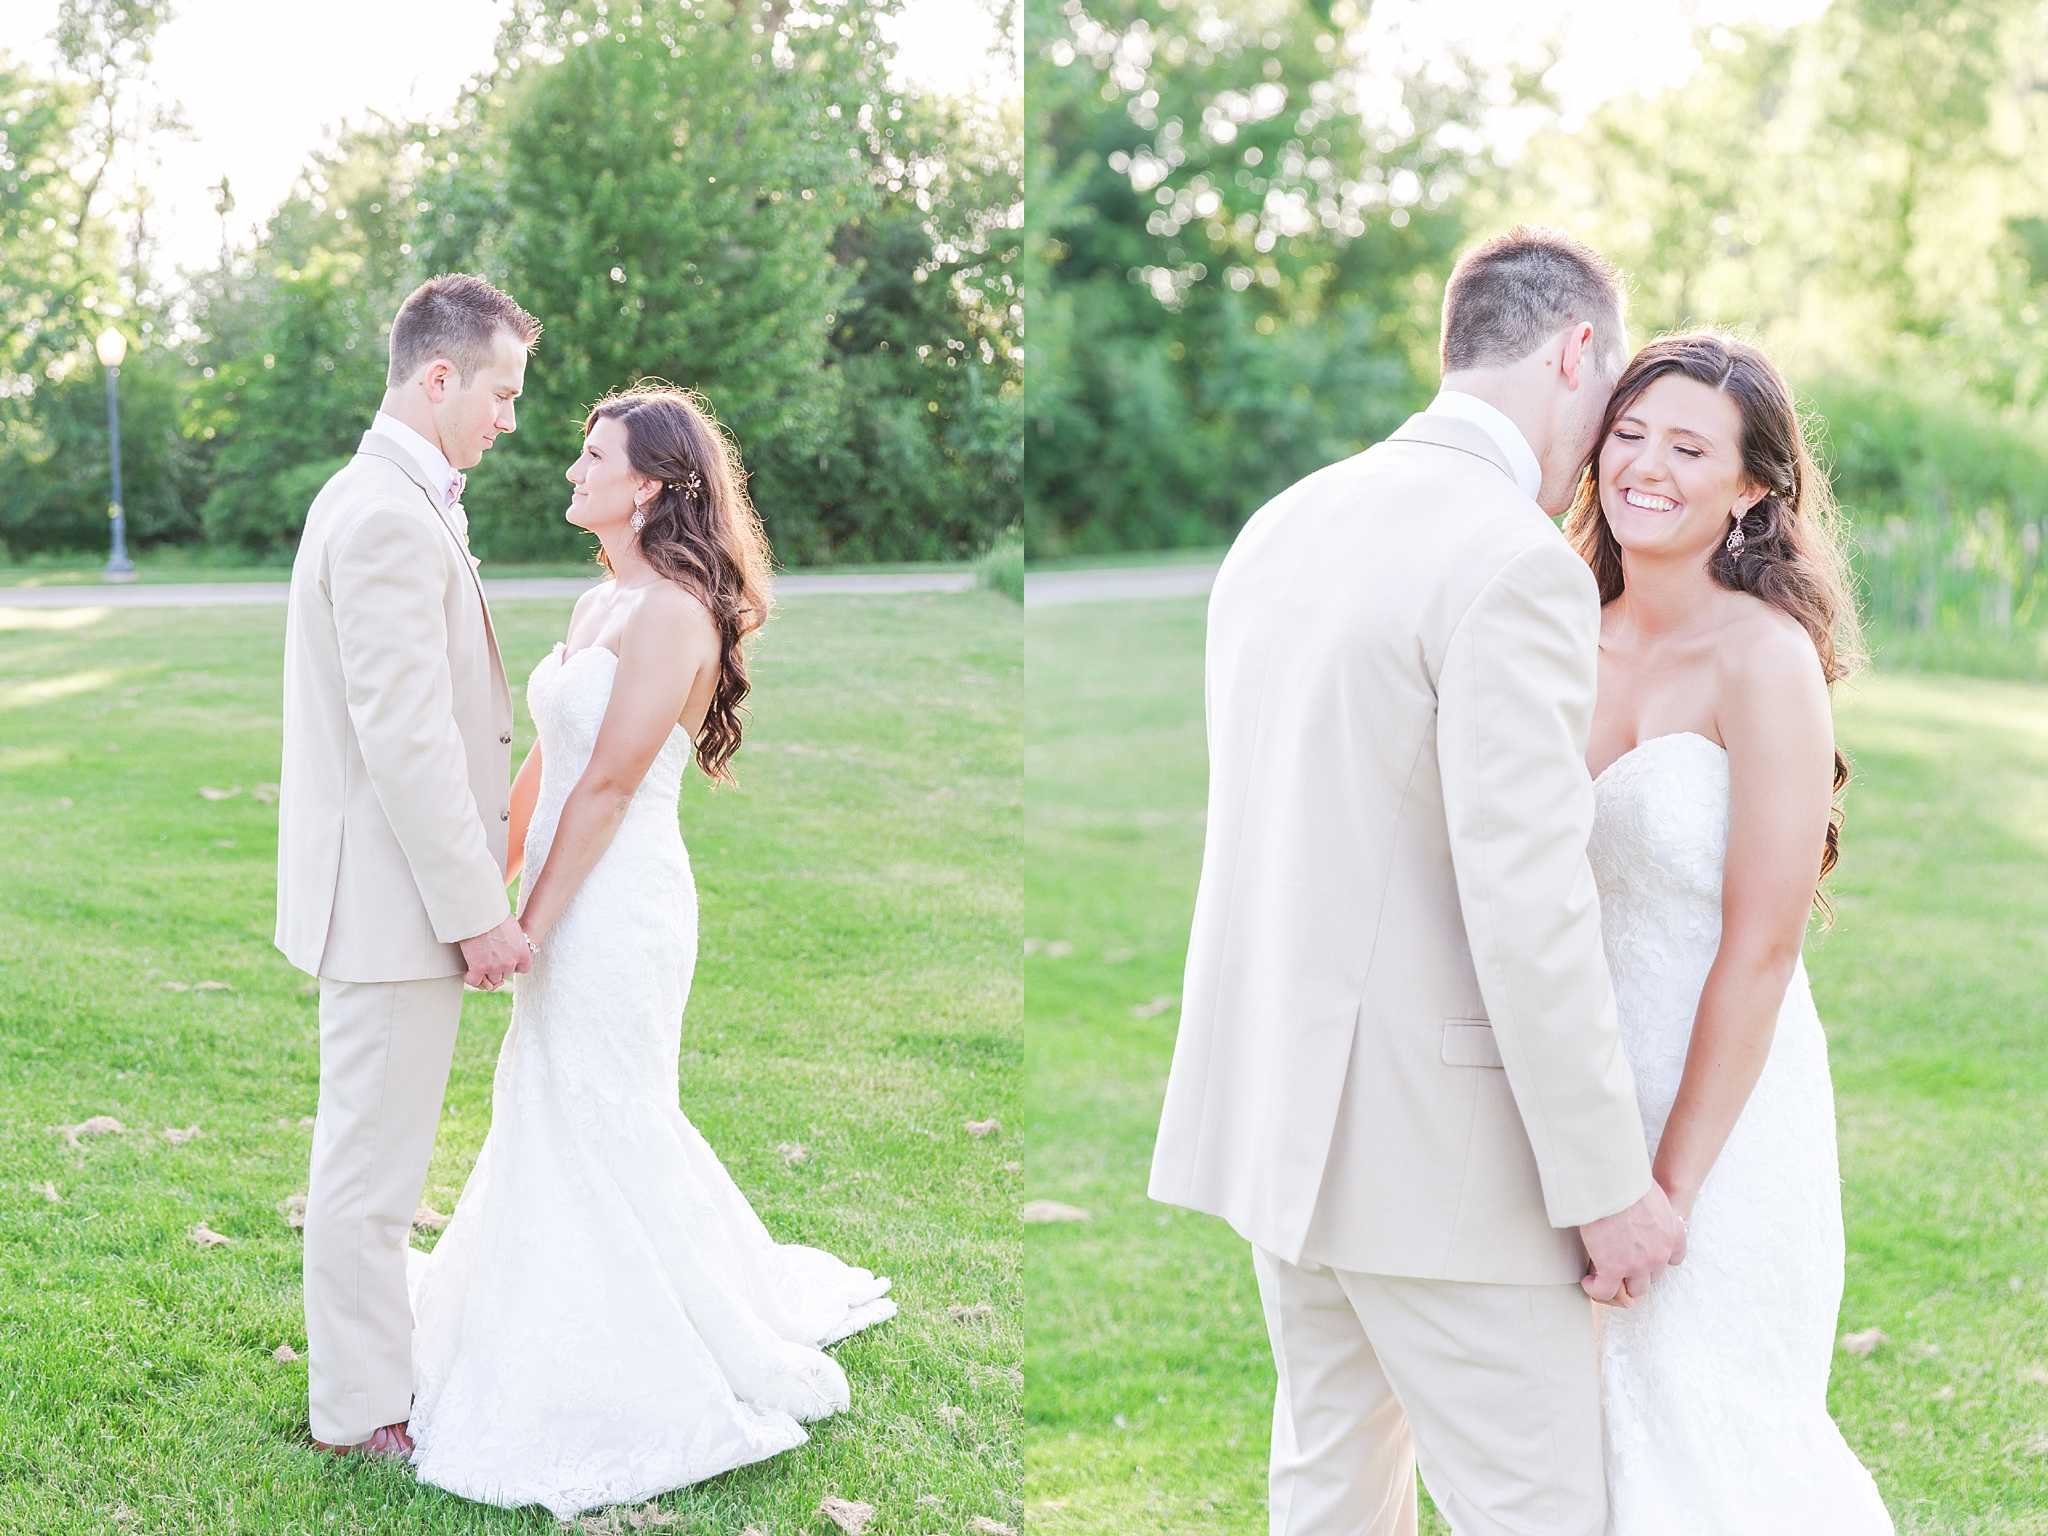 candid-timeless-wedding-photos-at-the-captains-club-in-grand-blanc-michigan-by-courtney-carolyn-photography_0070.jpg